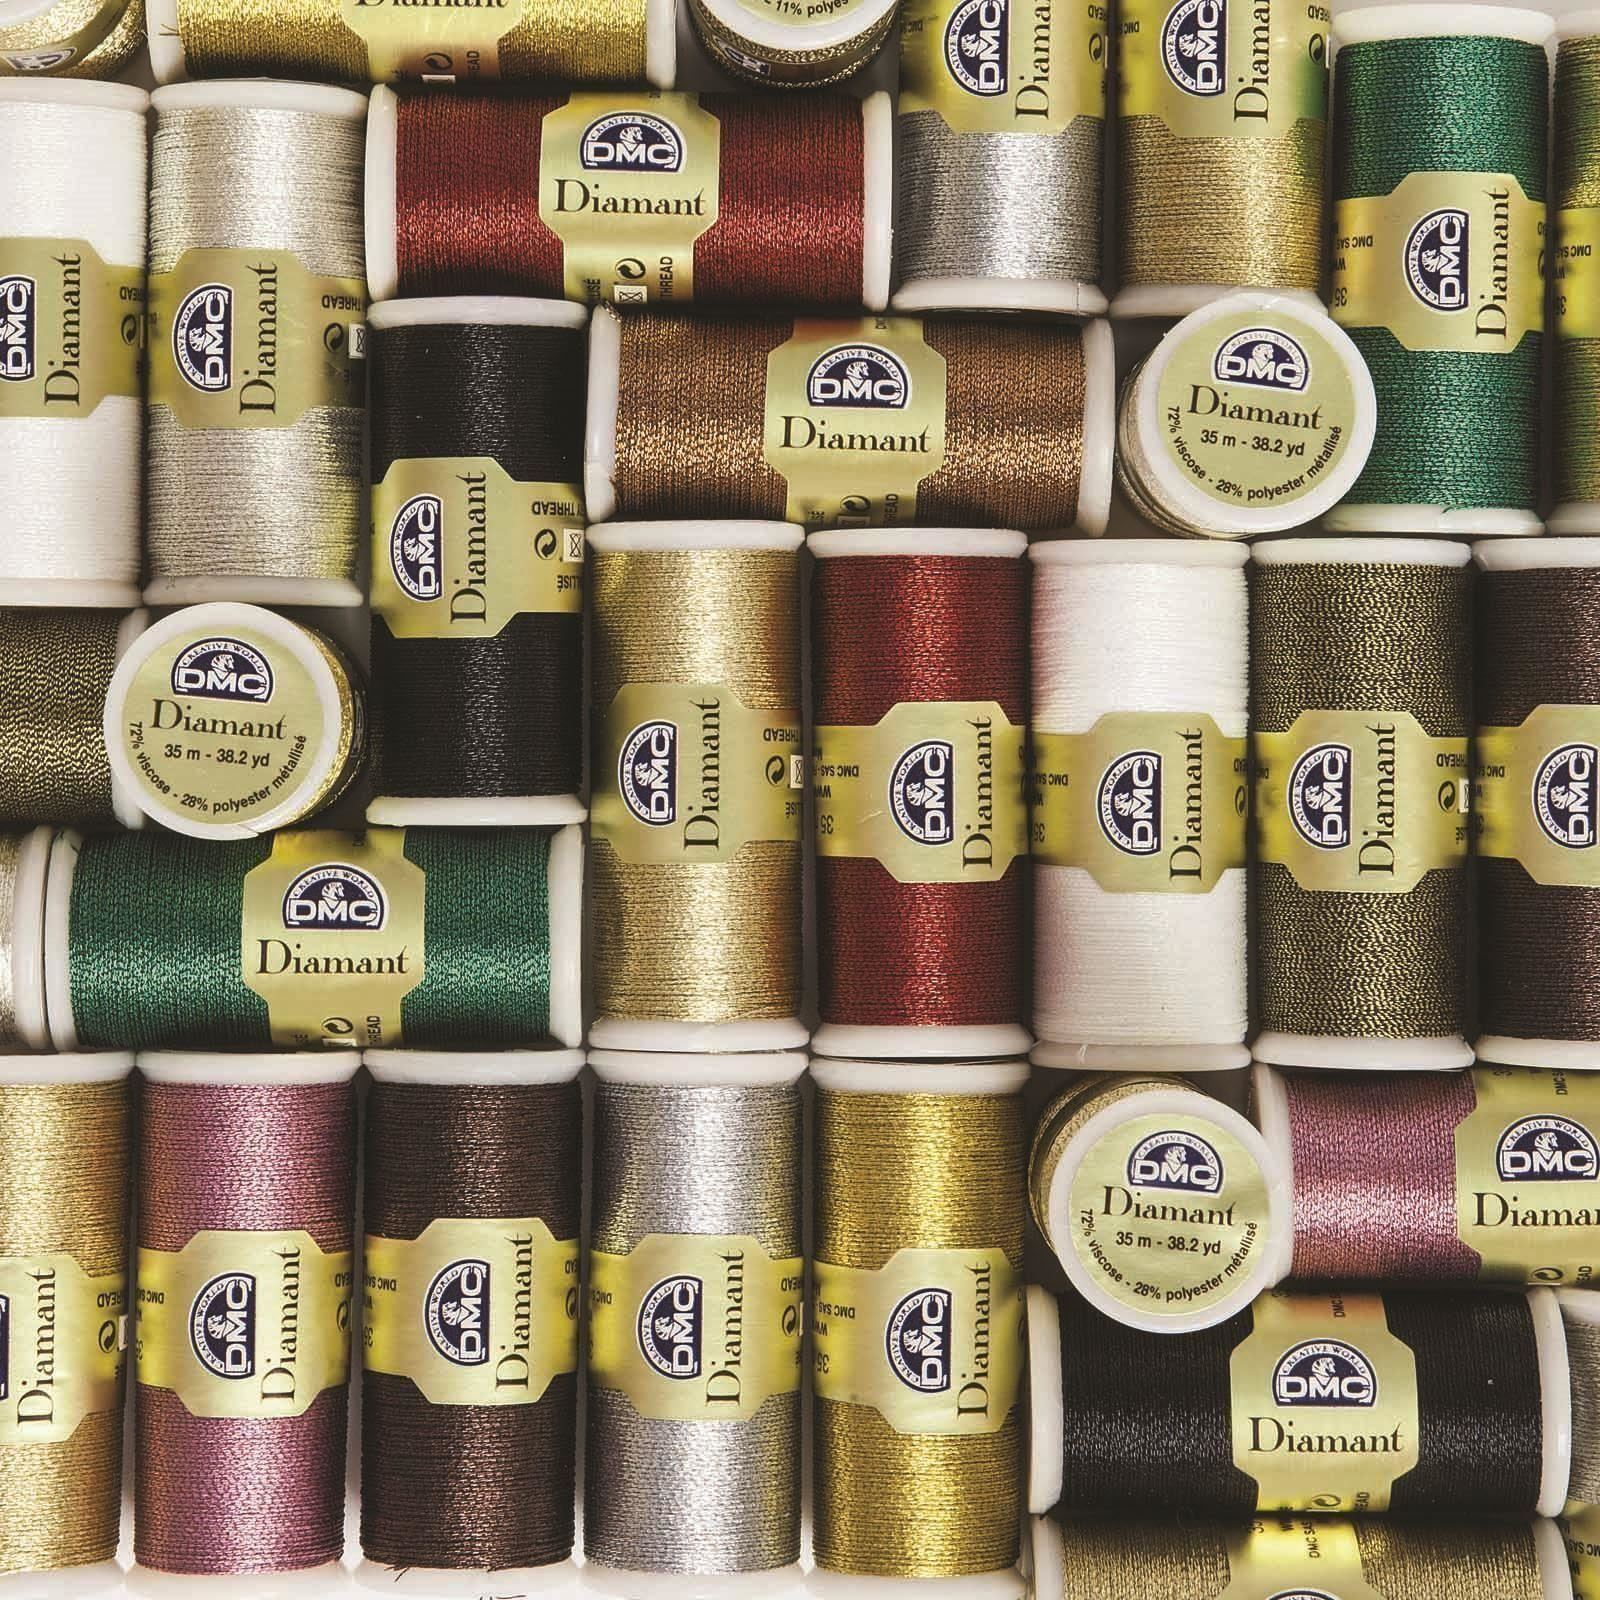 DMC-Diamant-Metallic-Embroidery-Thread-35m-Spool-Cross-Stitch thumbnail 51